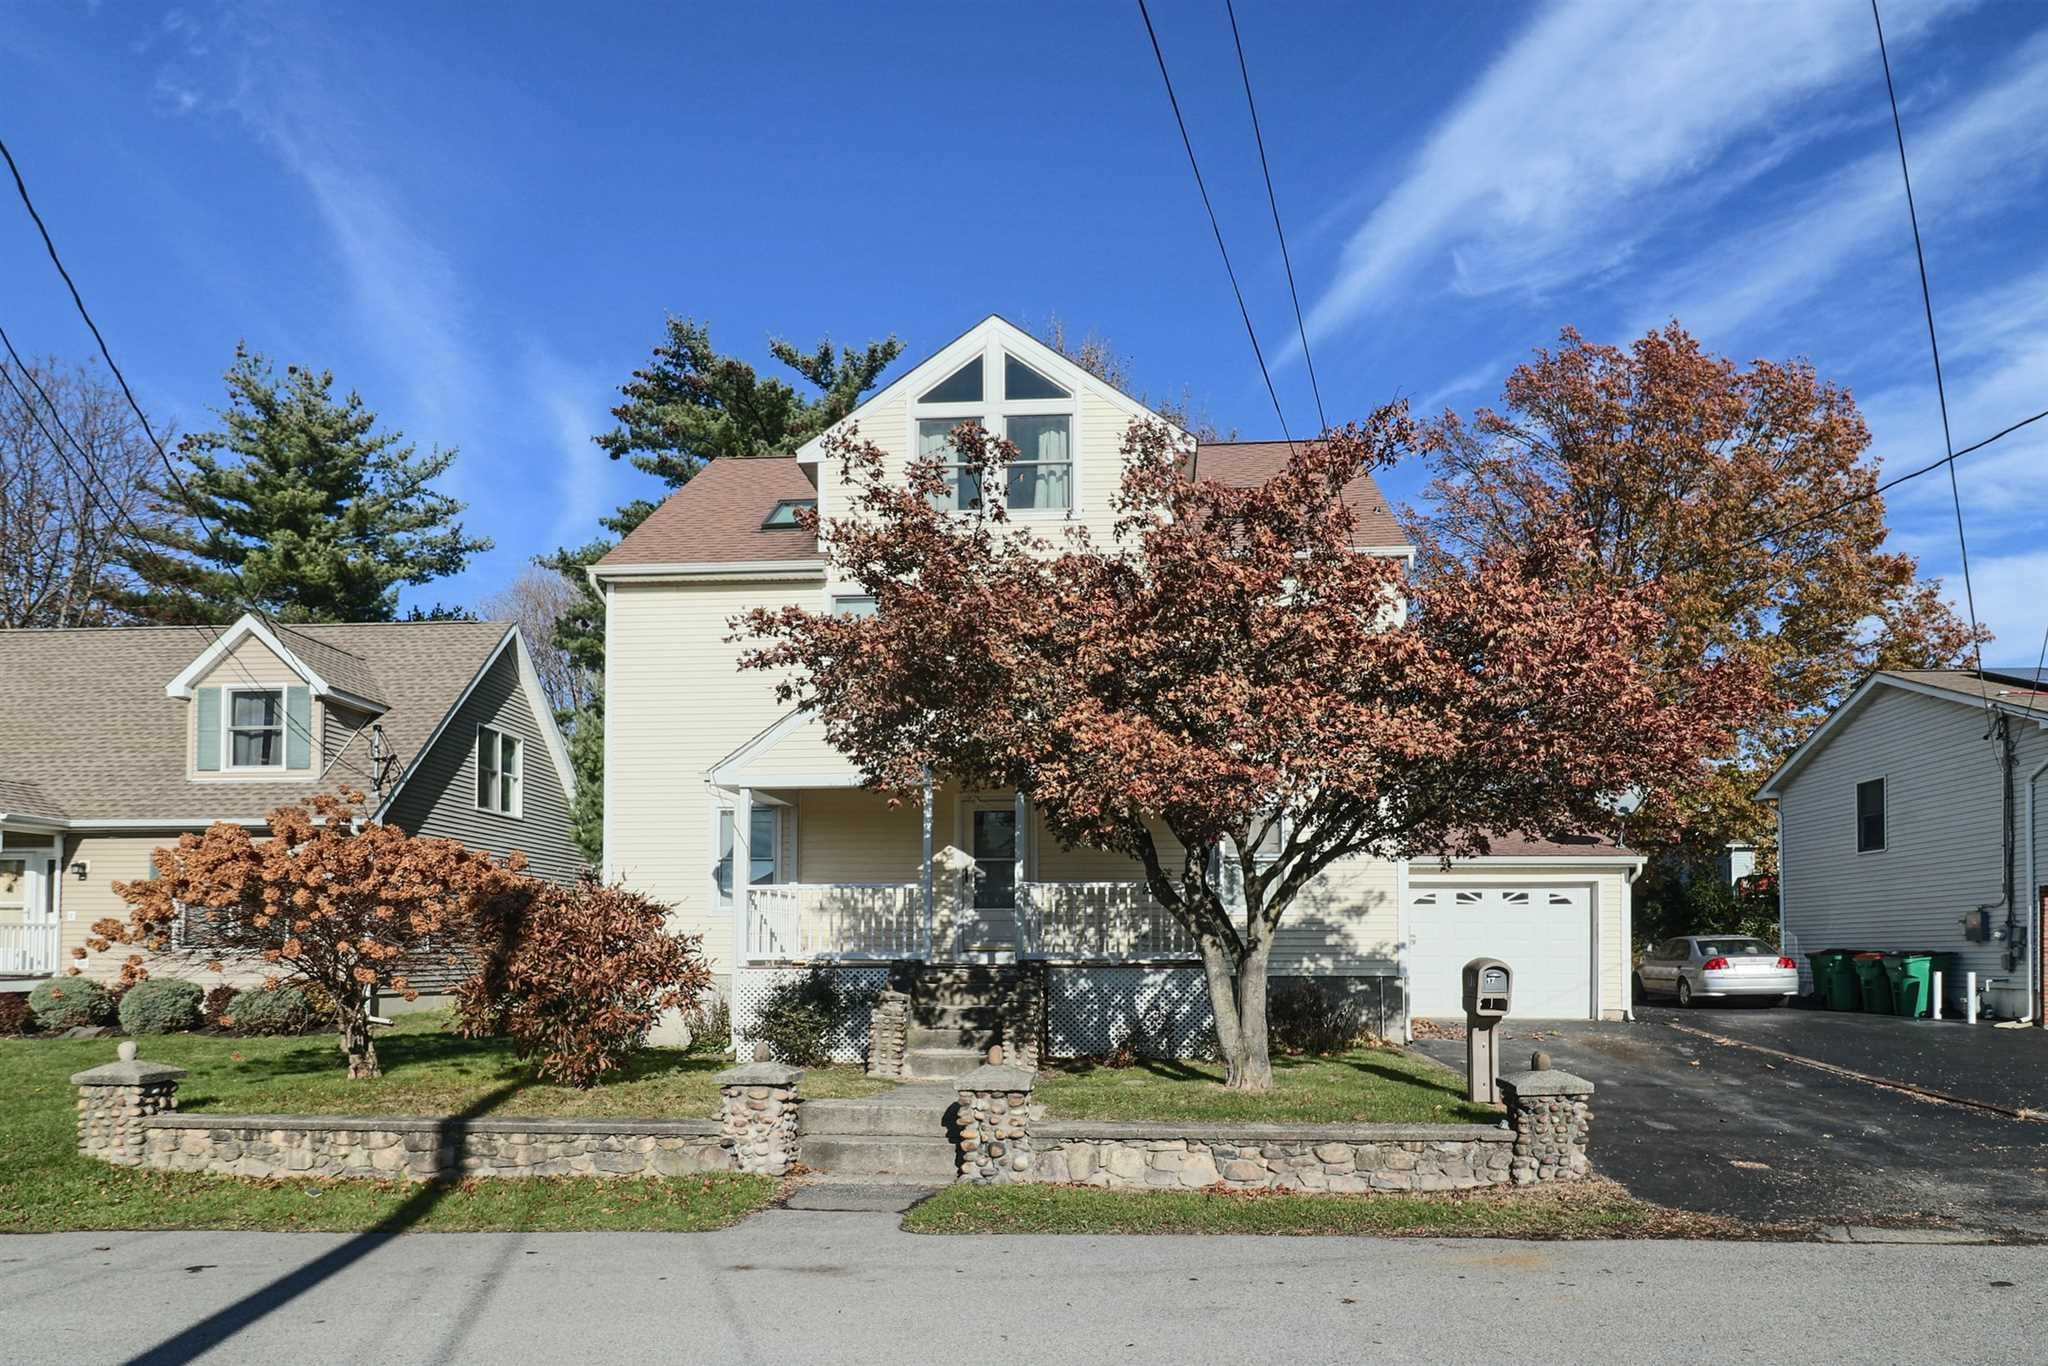 Single Family Home for Sale at 17 BARRETT Place 17 BARRETT Place Beacon, New York 12508 United States